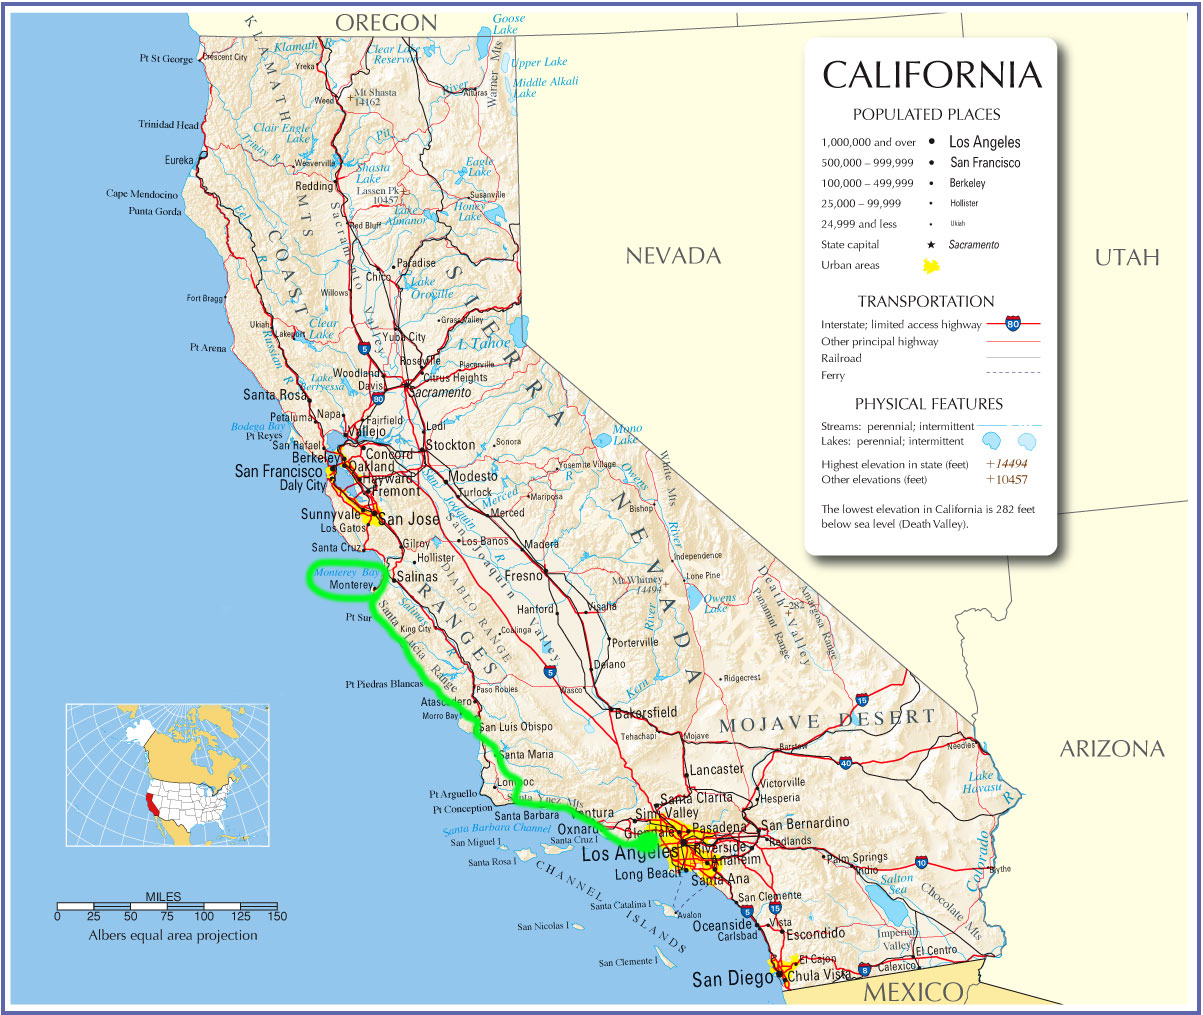 My Mission California Road Map California Pacific Coast Highway Map - California Pacific Coast Highway Map